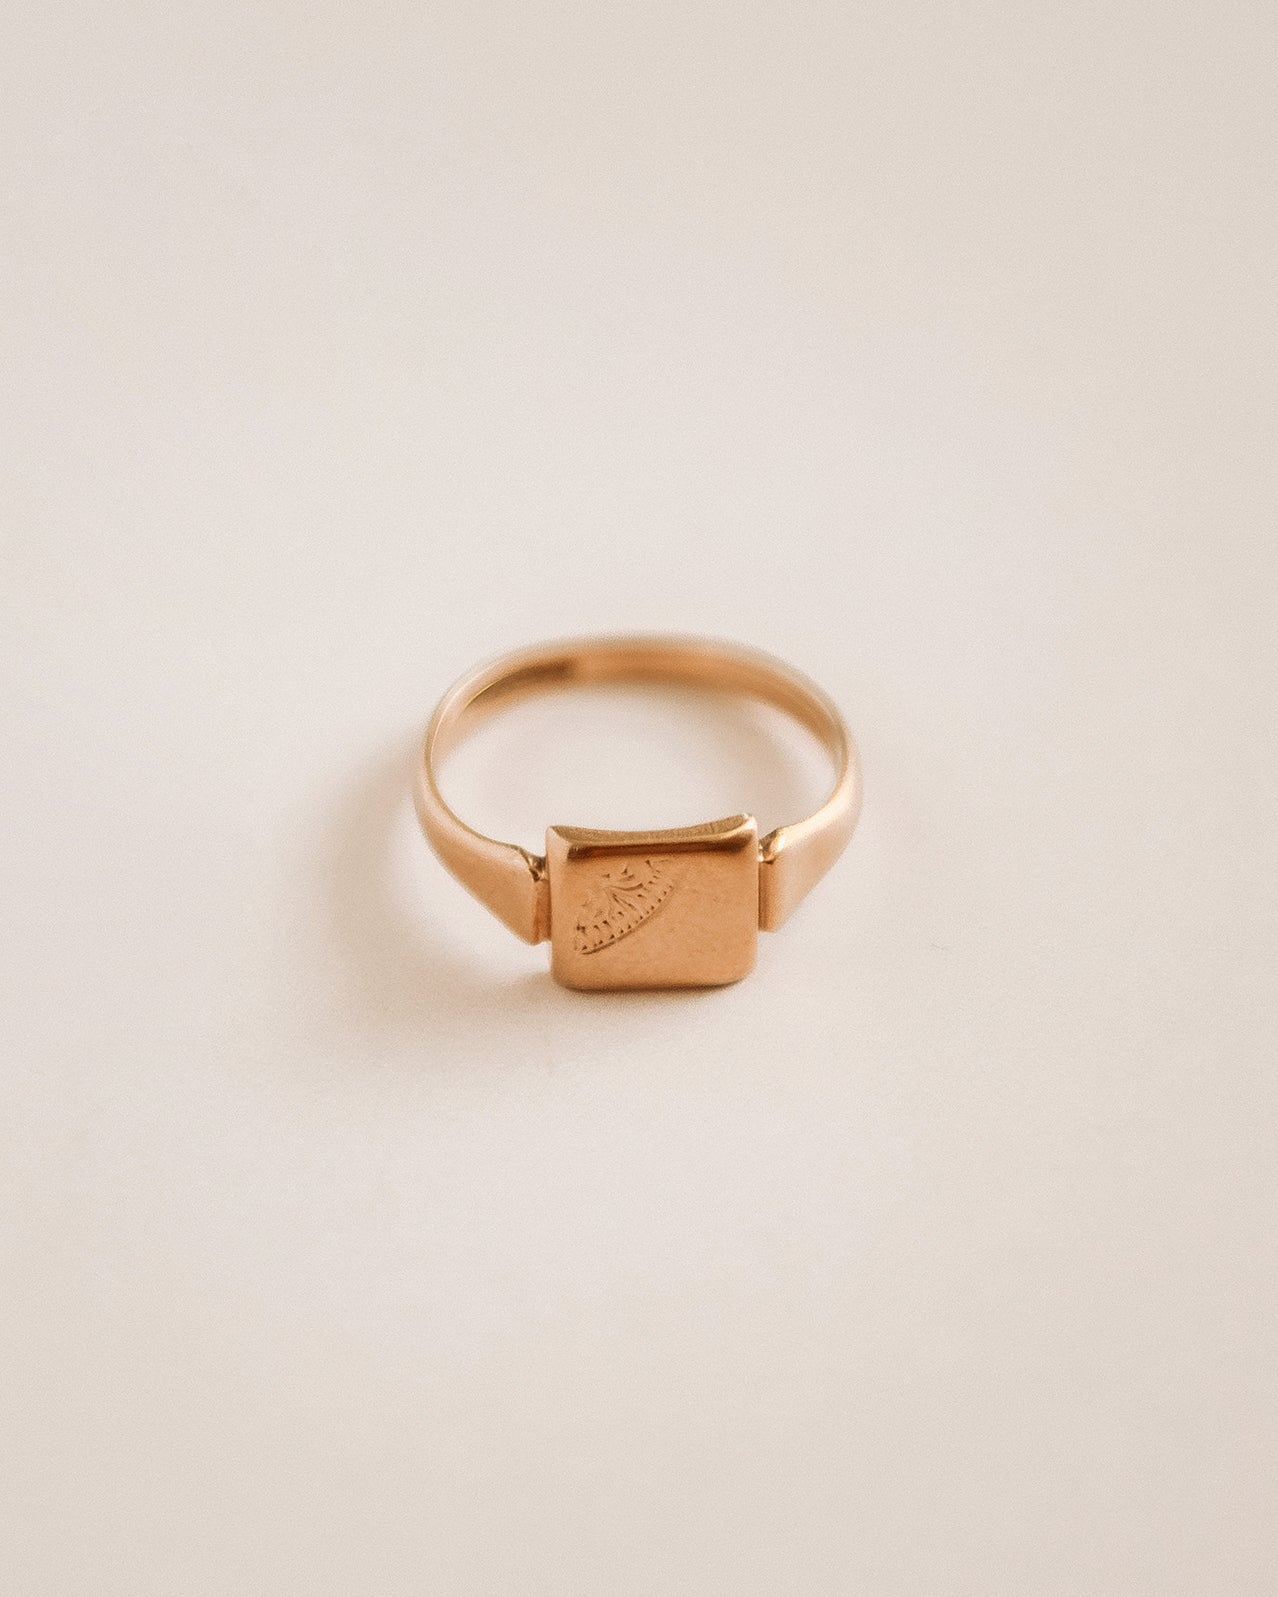 Image of Penny 9ct Gold Signet Ring